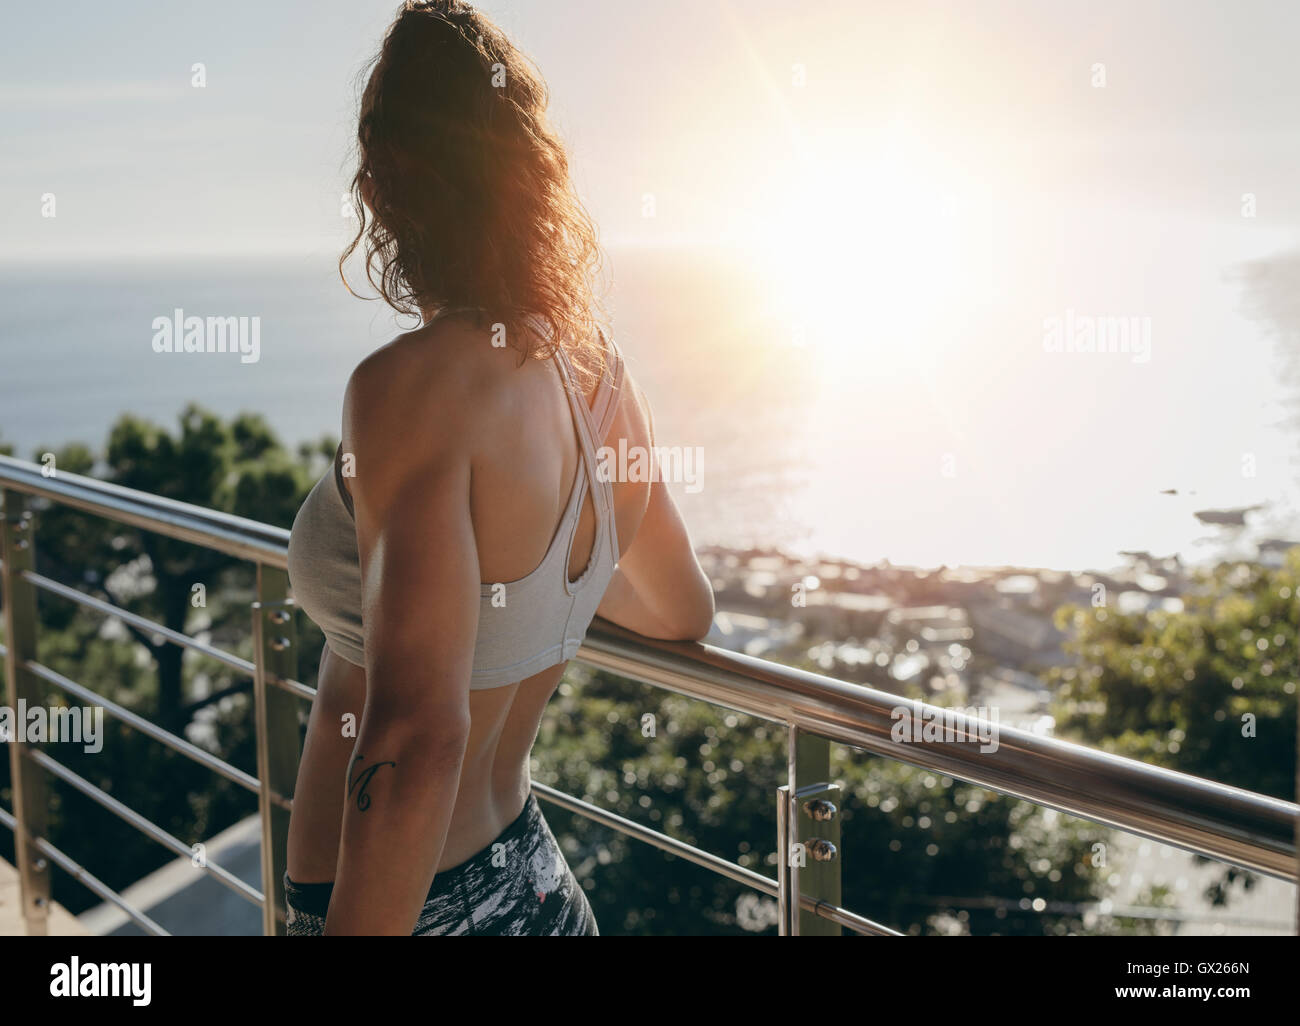 Rear view shot of woman standing by a railing in balcony and looking away on a bright sunny day. - Stock Image